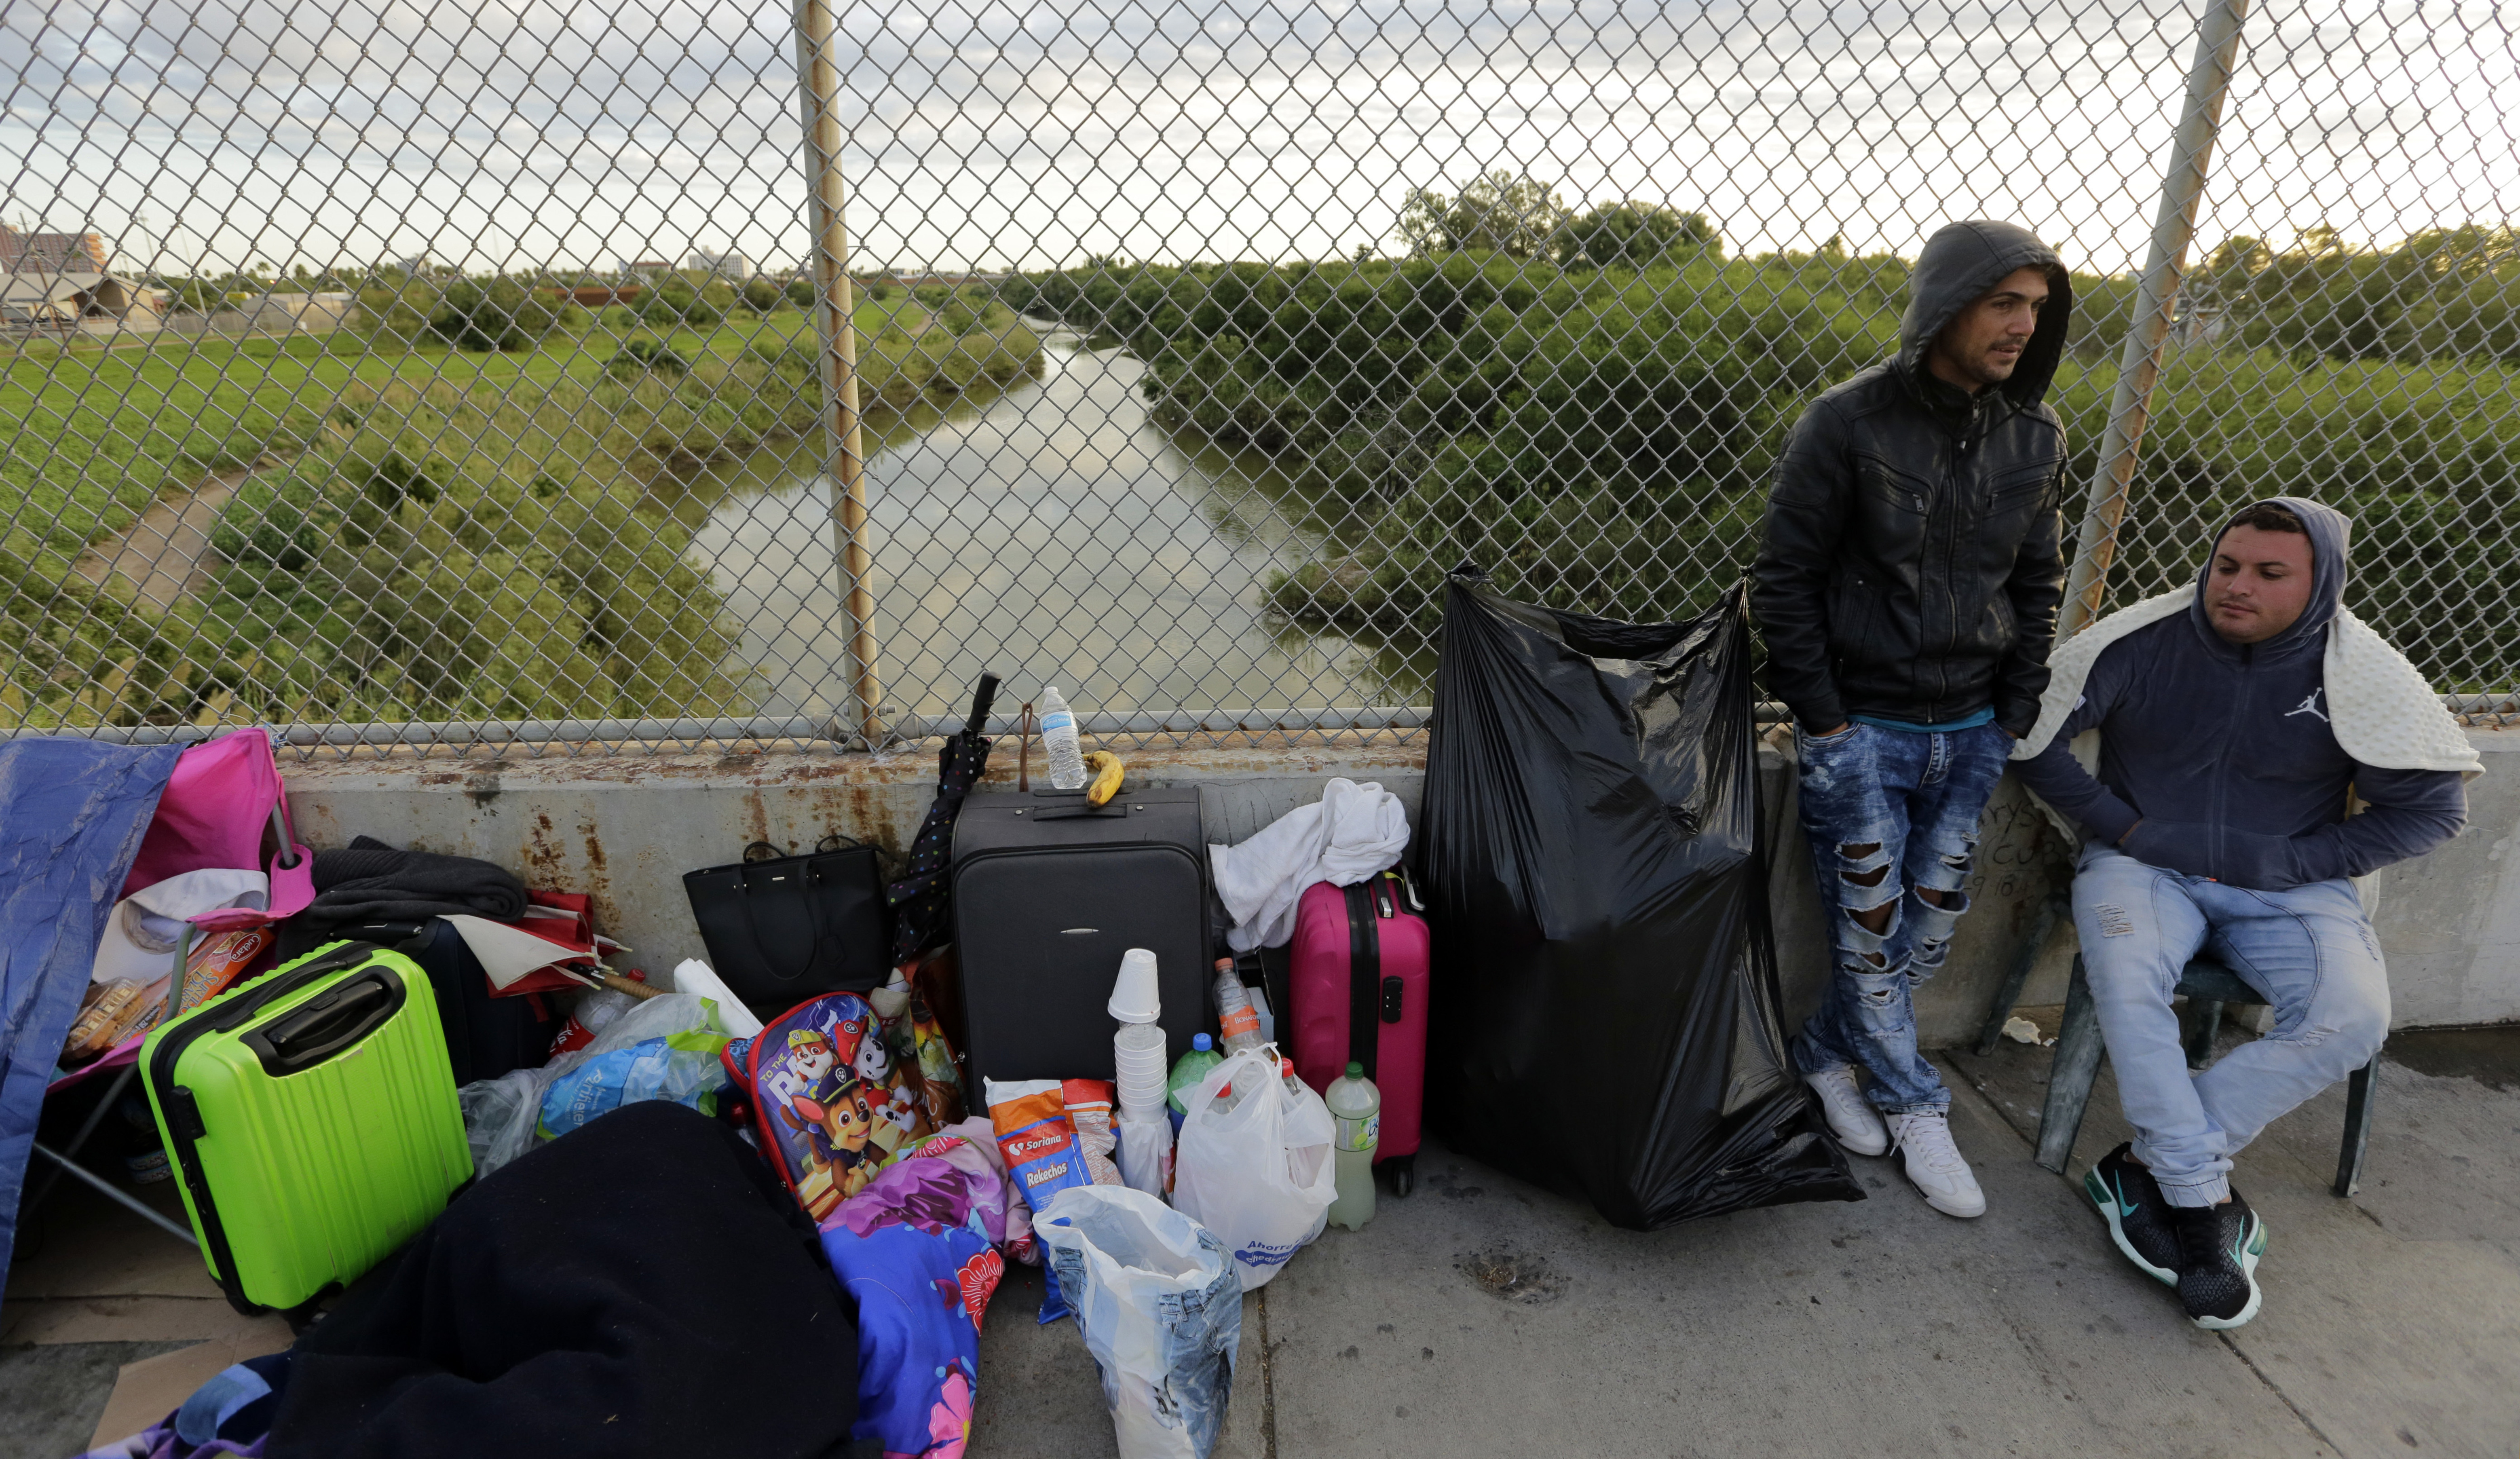 US to send asylum seekers back to dangerous part of Mexico